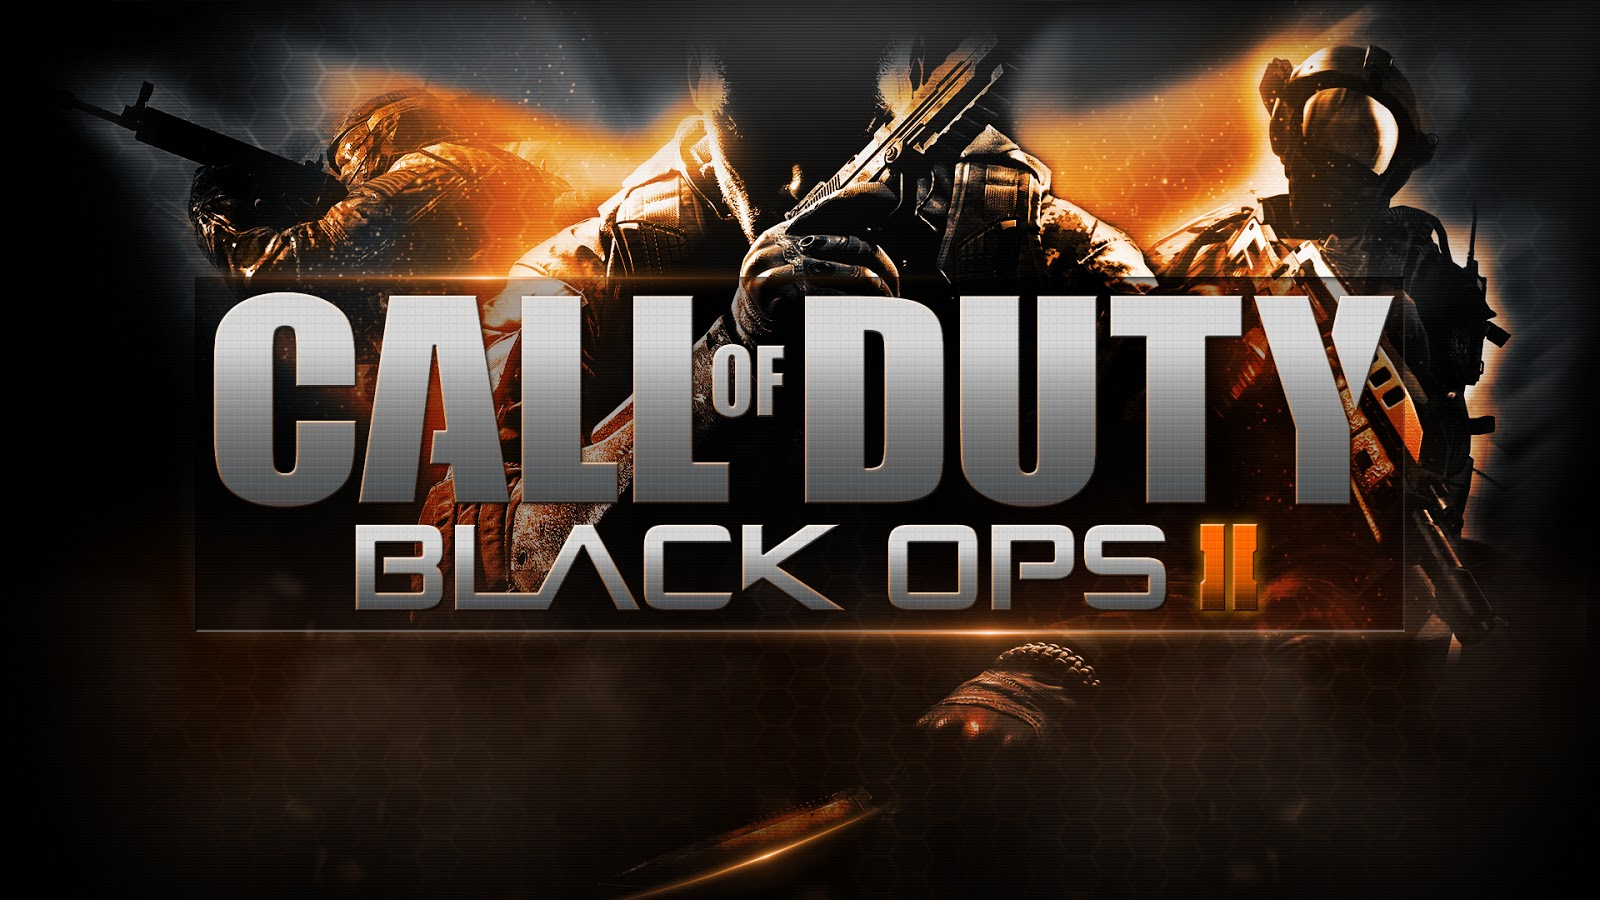 Call of Duty: Black Ops 2 Is Back with a Vengeance in New ... Call Of Duty Map Packs Black Ops on call of duty 3 zombies maps, all 4 bo2 map packs, call of duty mw3 map packs, call duty black ops zombies all maps, black ops 2 dlc map packs, call of duty bo2 map packs, call of duty apocalypse trailer, call of duty advanced warfare maps, call of duty 2 guns, all black ops map packs, call of duty blackops 2, call duty black ops 3, call duty ghost multiplayer, black ops 1 map packs, gta map packs, call of duty all zombie maps, black ops ii map packs, call of duty 2 multiplayer maps, call of duty ghosts maps, bo2 dlc map packs,